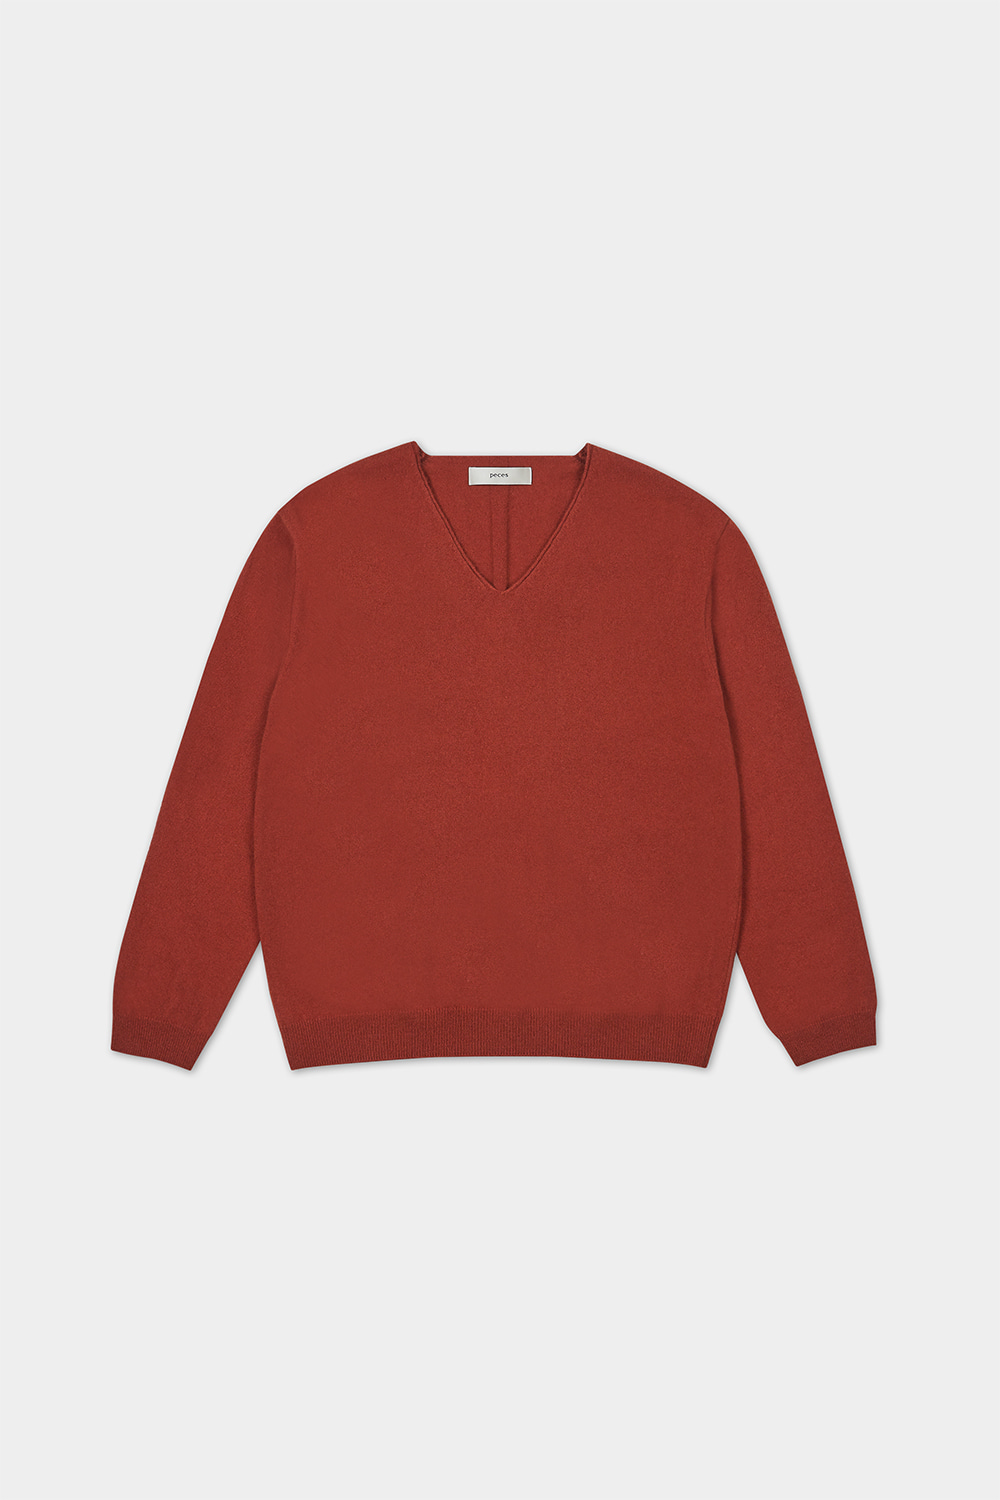 CASHMERE BLENDED KNIT (RUST BROWN)